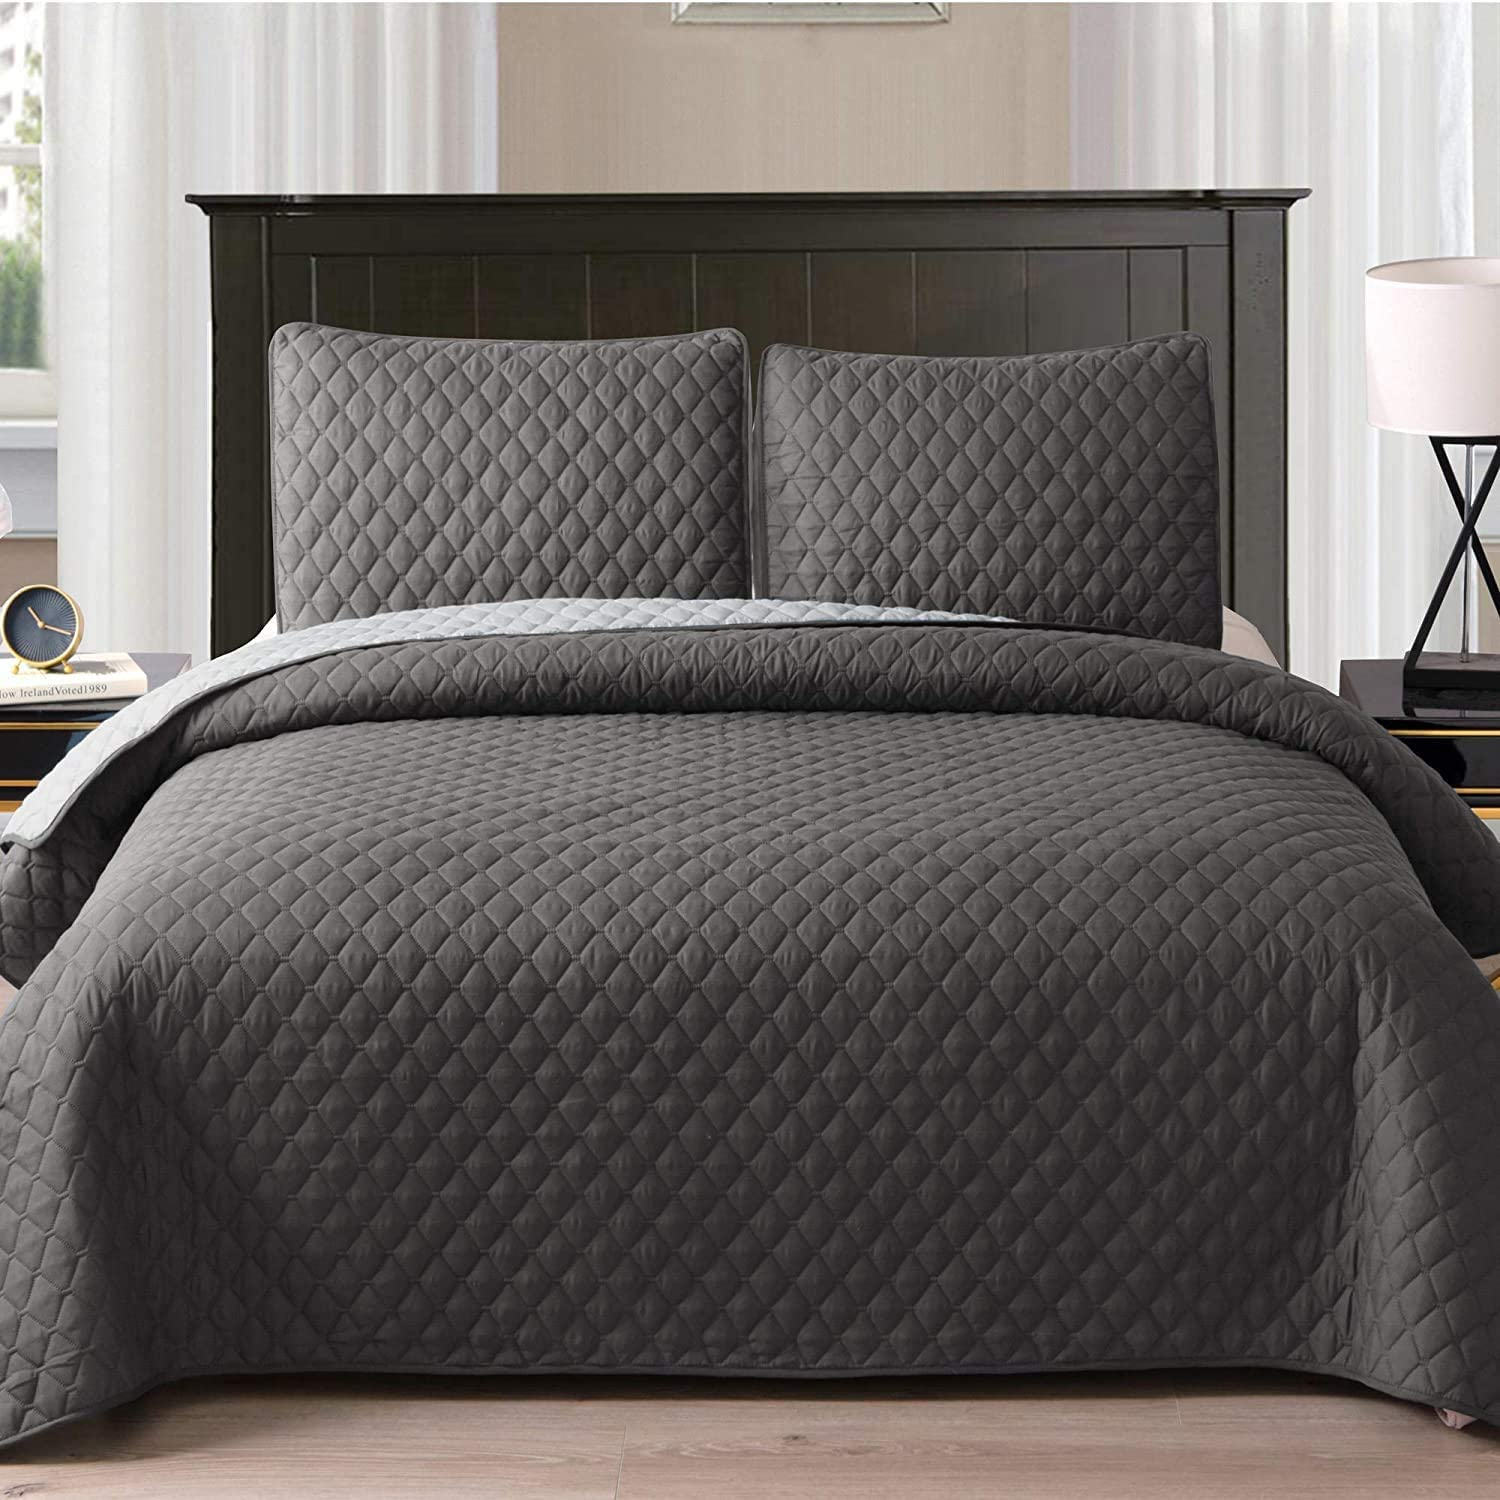 """Exclusivo Mezcla Ultrasonic Reversible 3-Piece King Size Quilt Set with Pillow Shams, Lightweight Bedspread/Coverlet/Bed Cover - (Grey, 92""""x104"""")"""